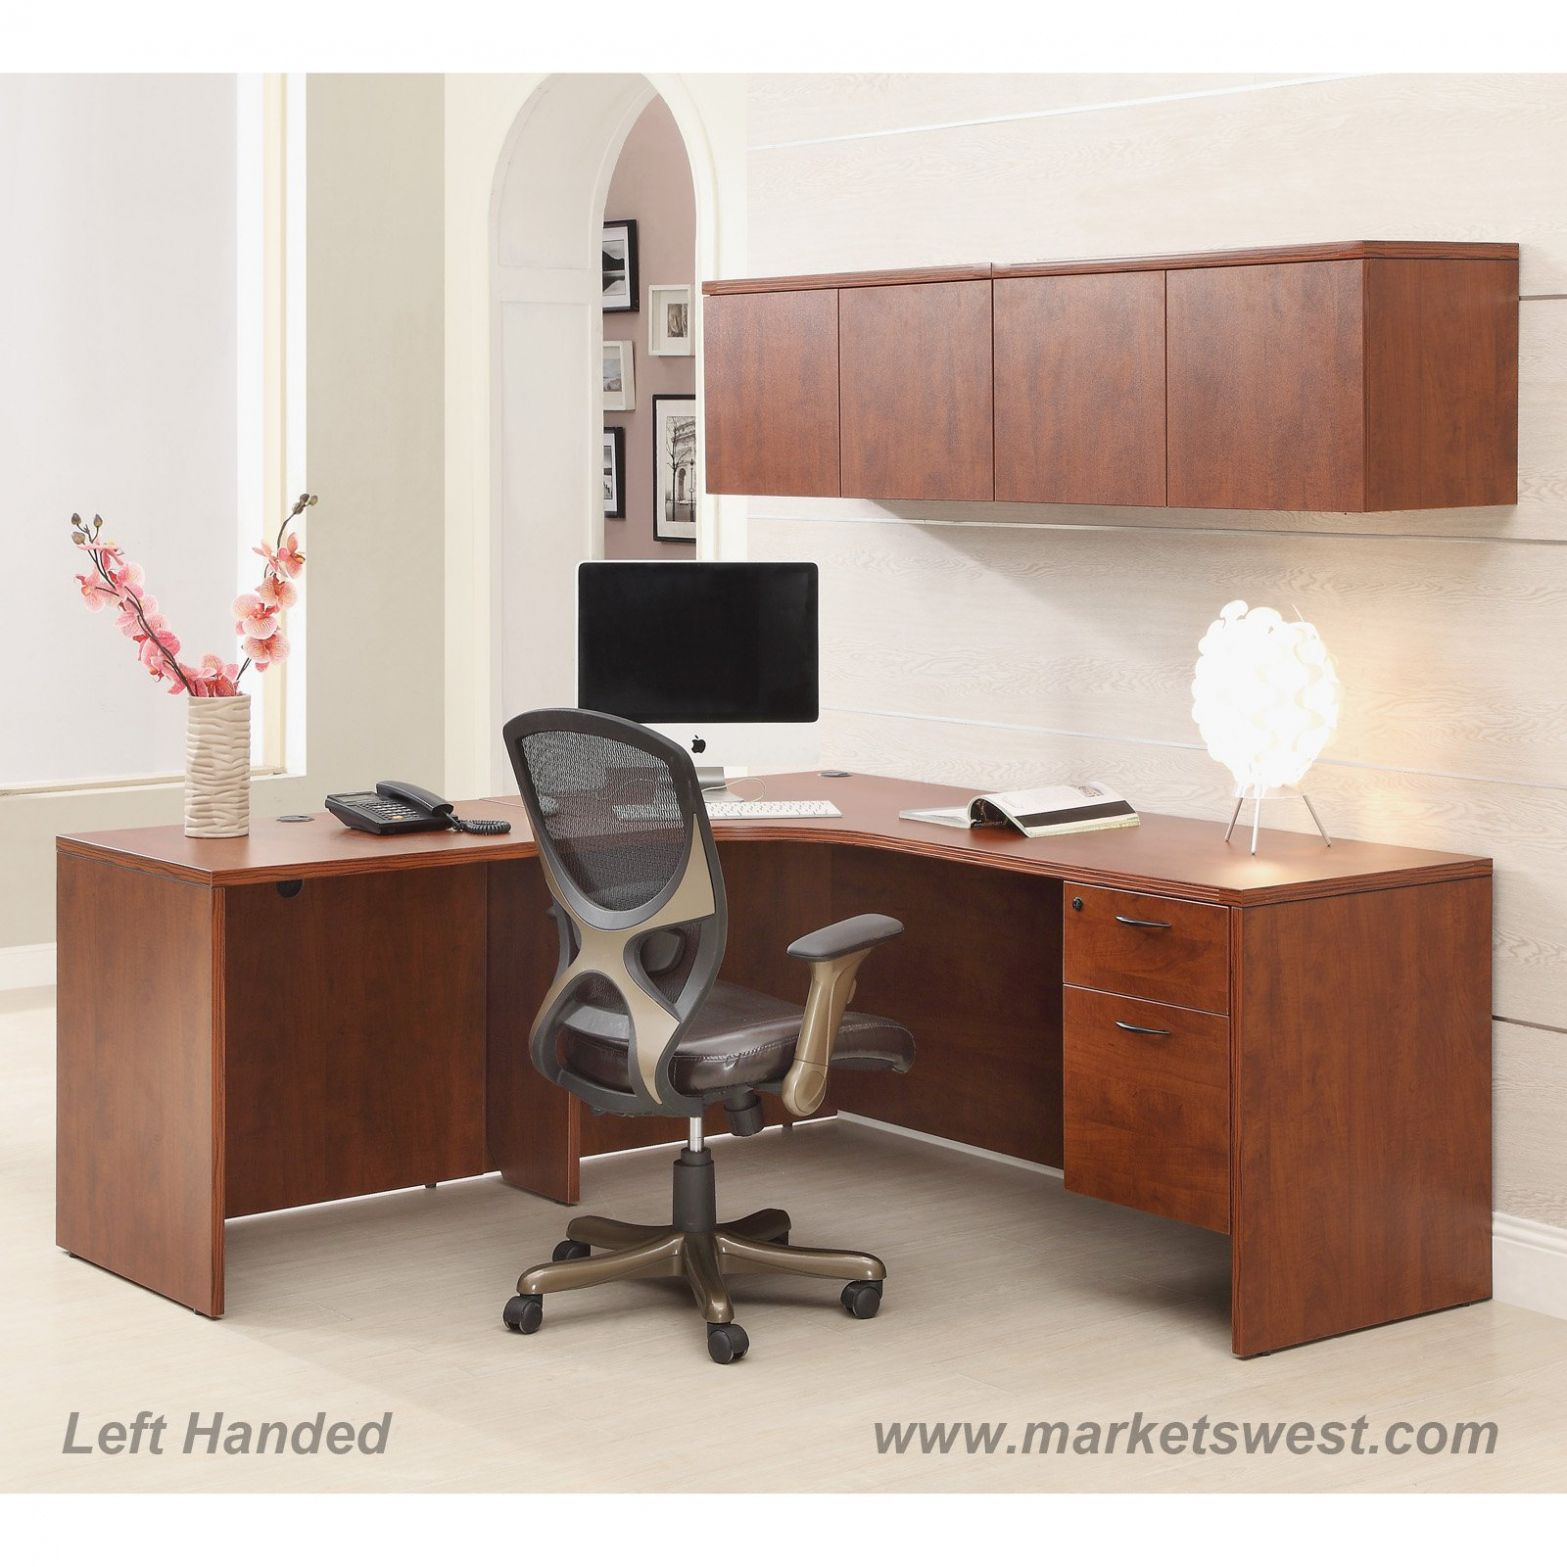 wall mounted cabinets office. 50+ Wall Mounted Cabinets Office - Executive Home Furniture Check More At Http: A